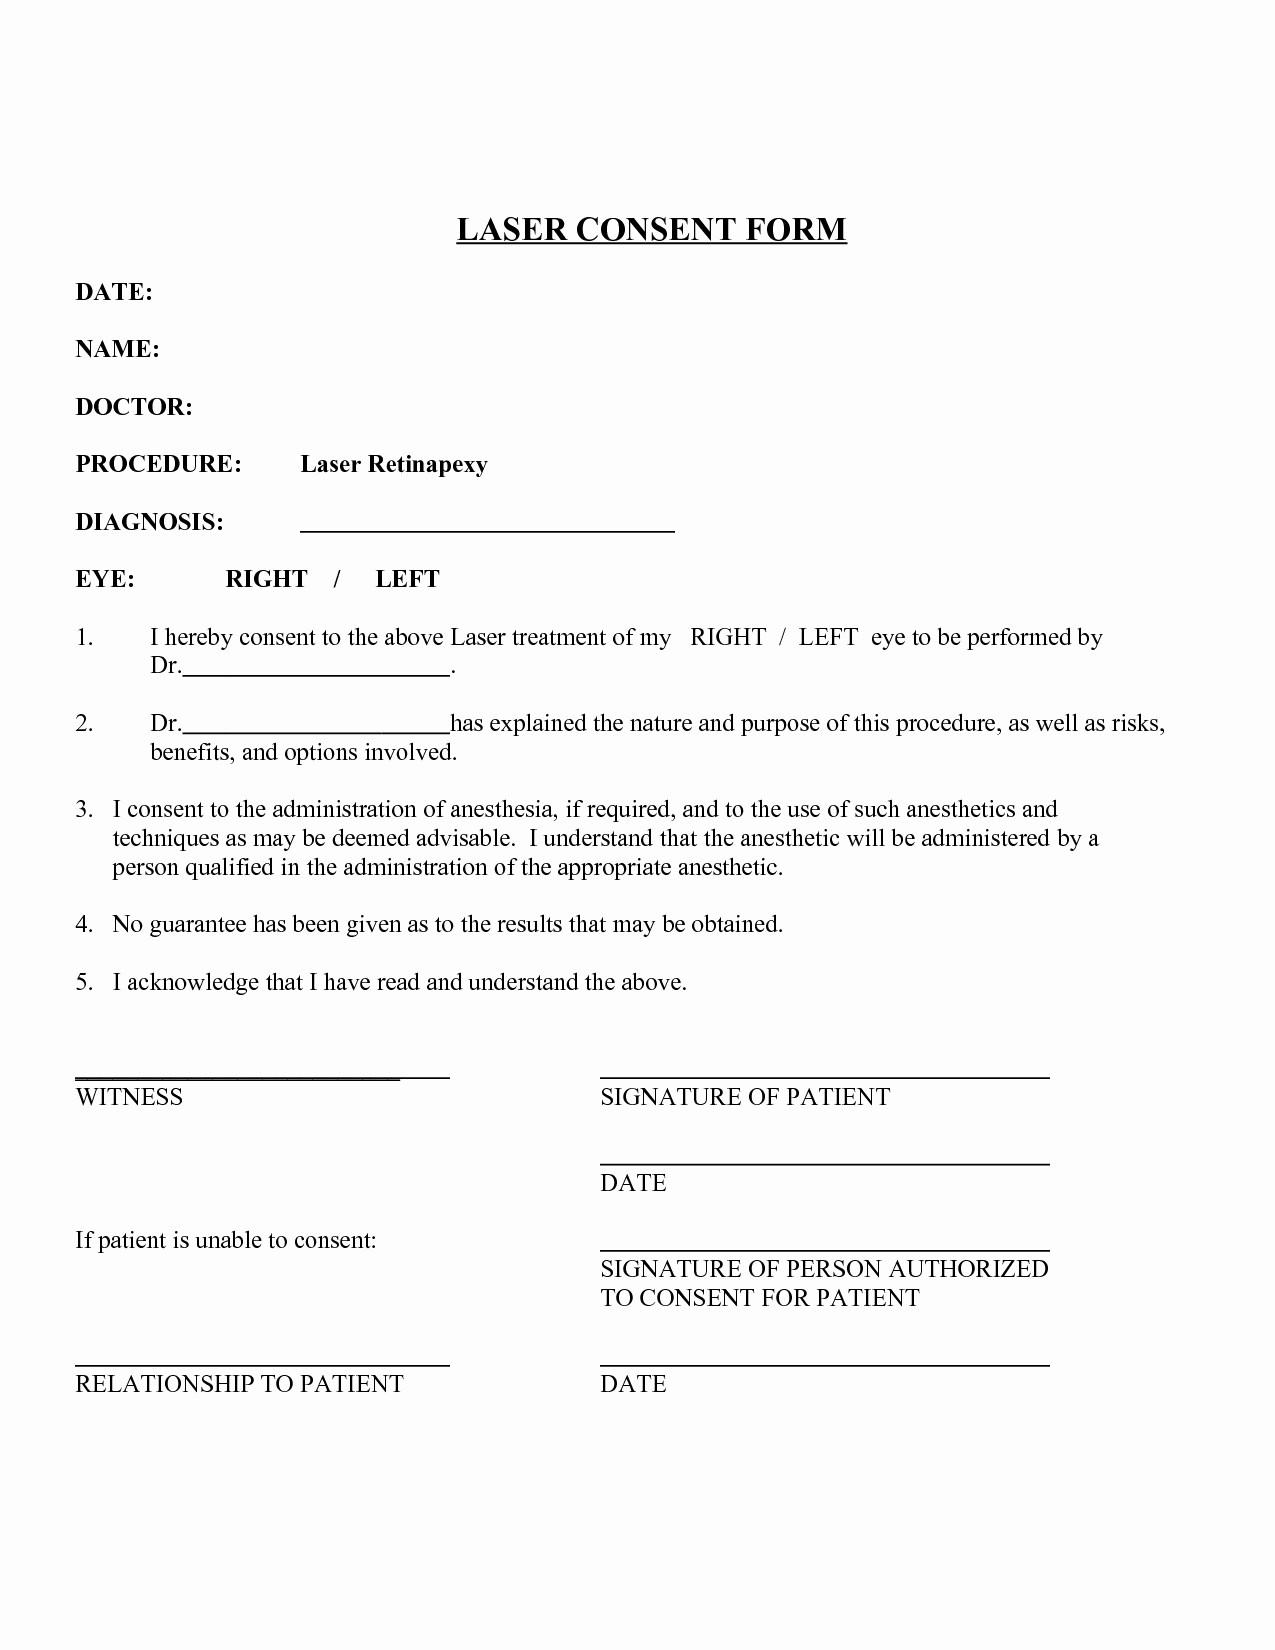 Medical Procedure Consent form Template Awesome Minor Surgery Consent form Template